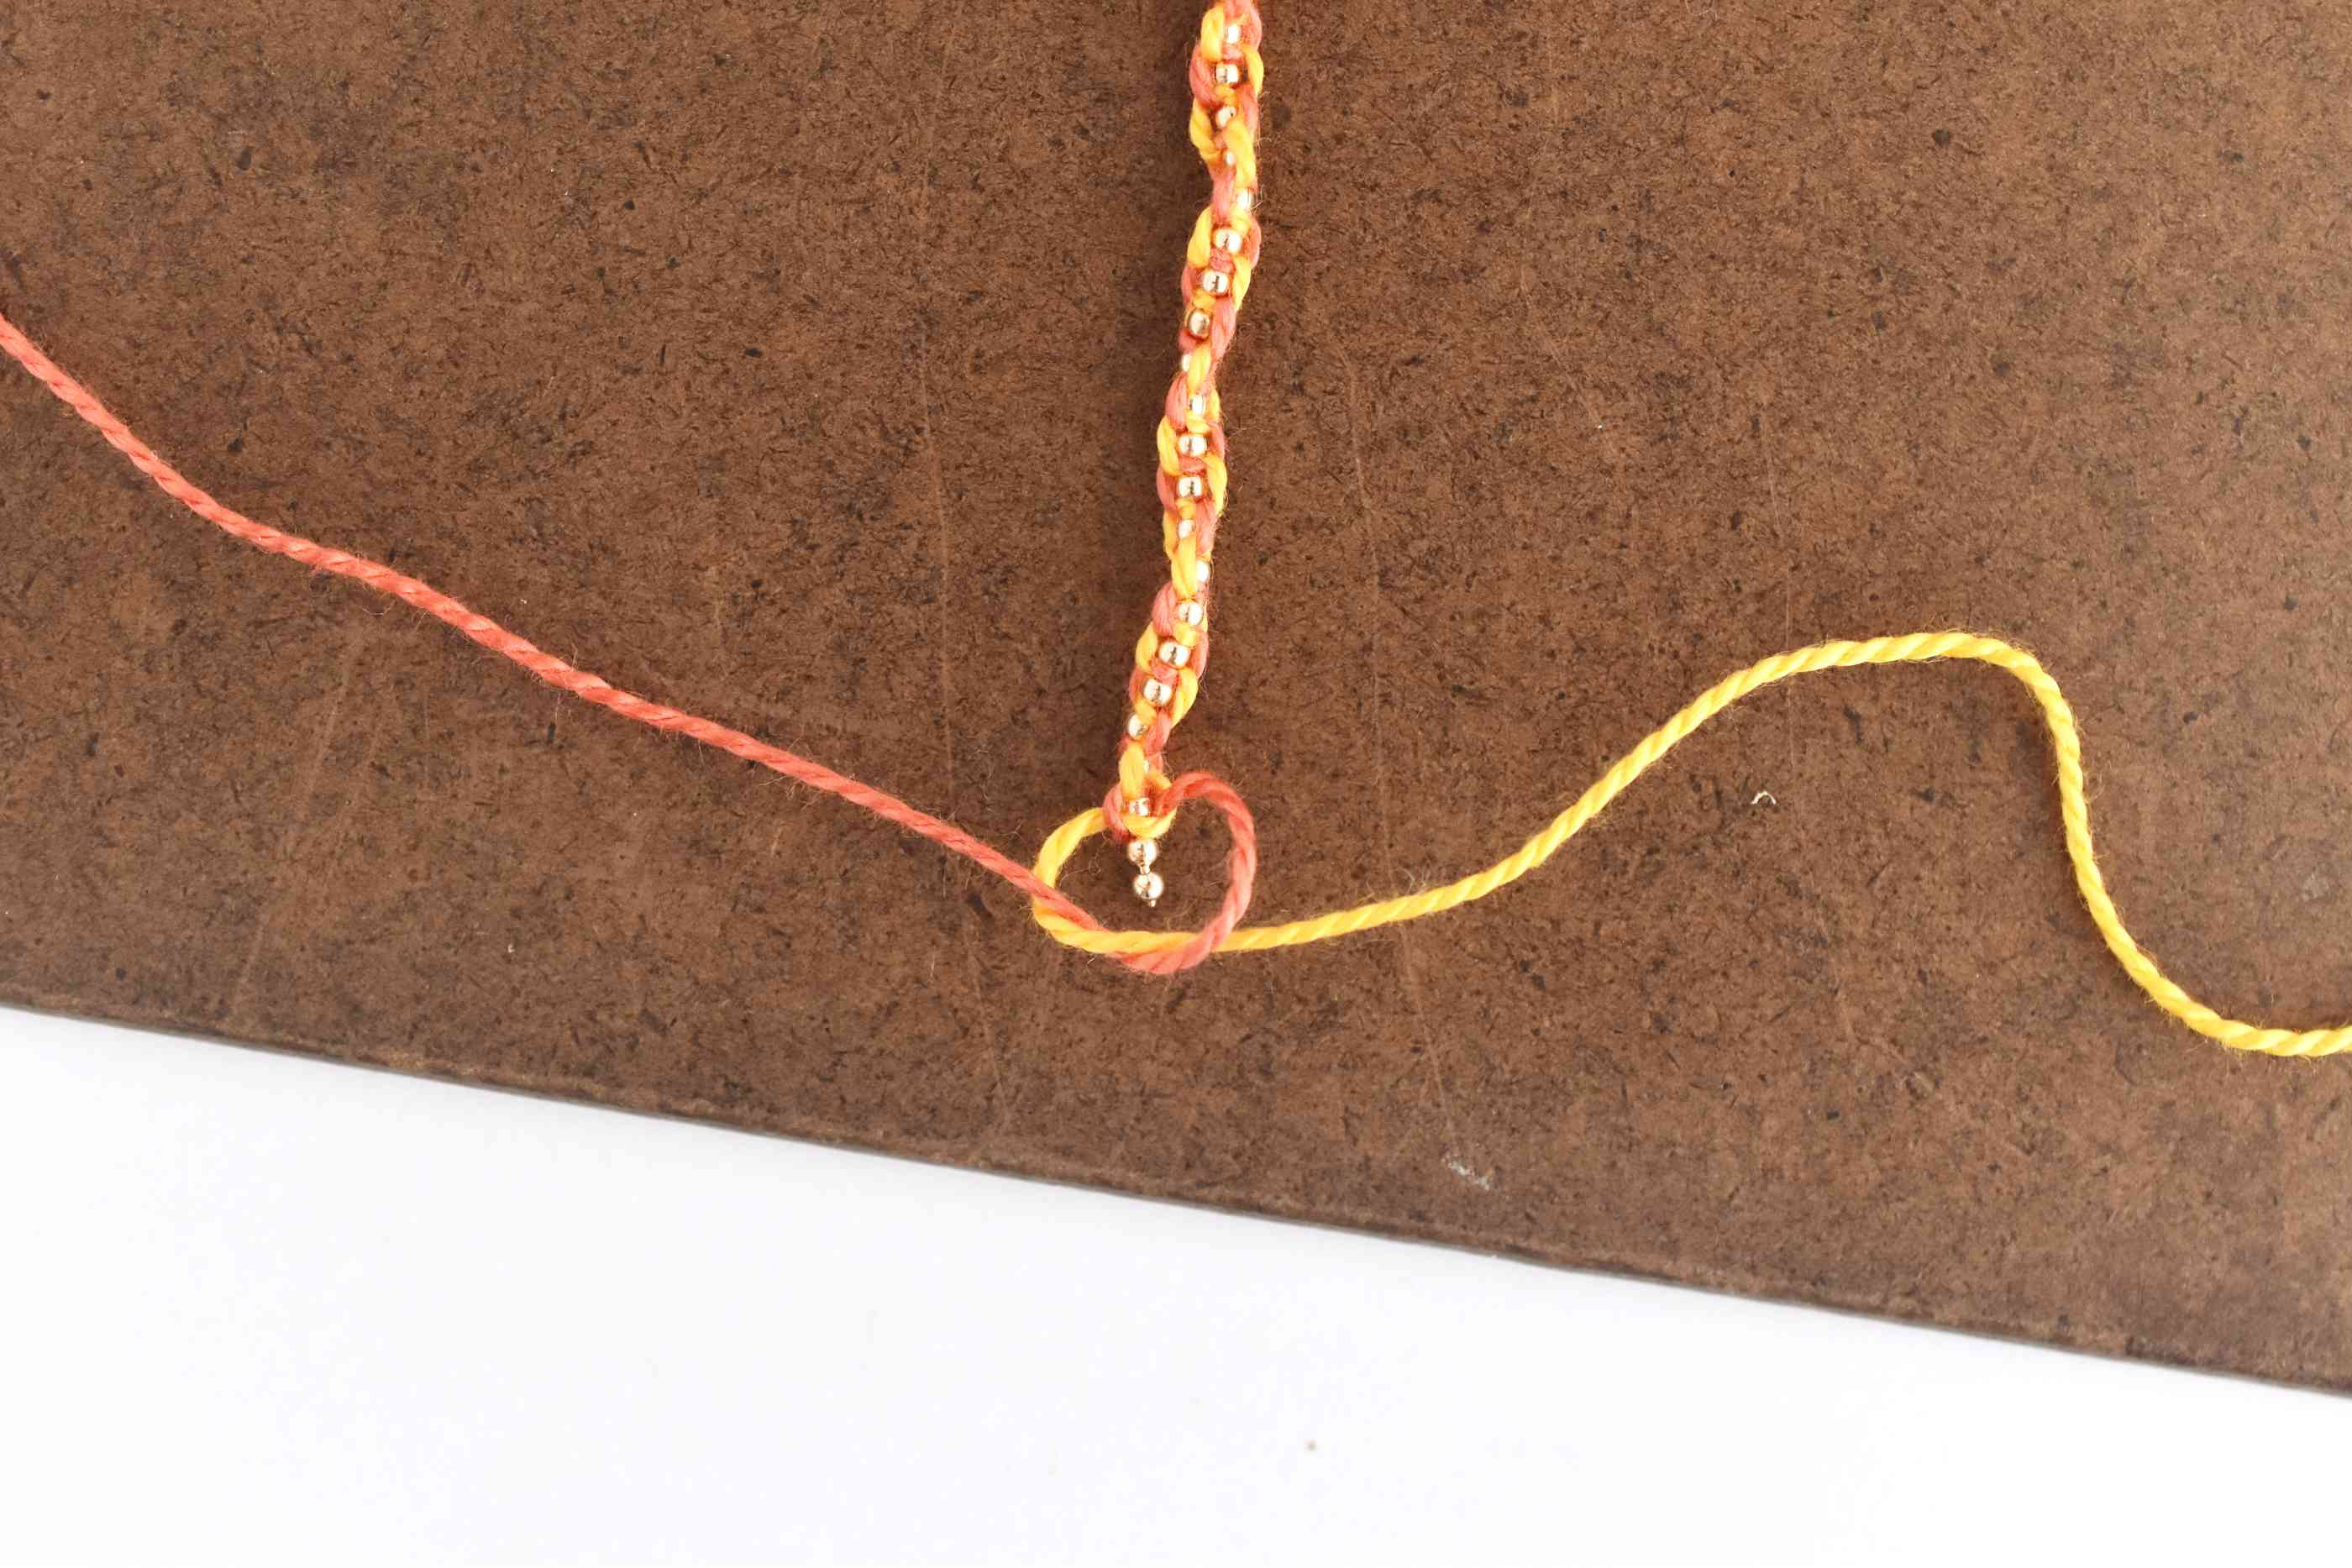 Tie a Square Knot at the End of the Bracelet